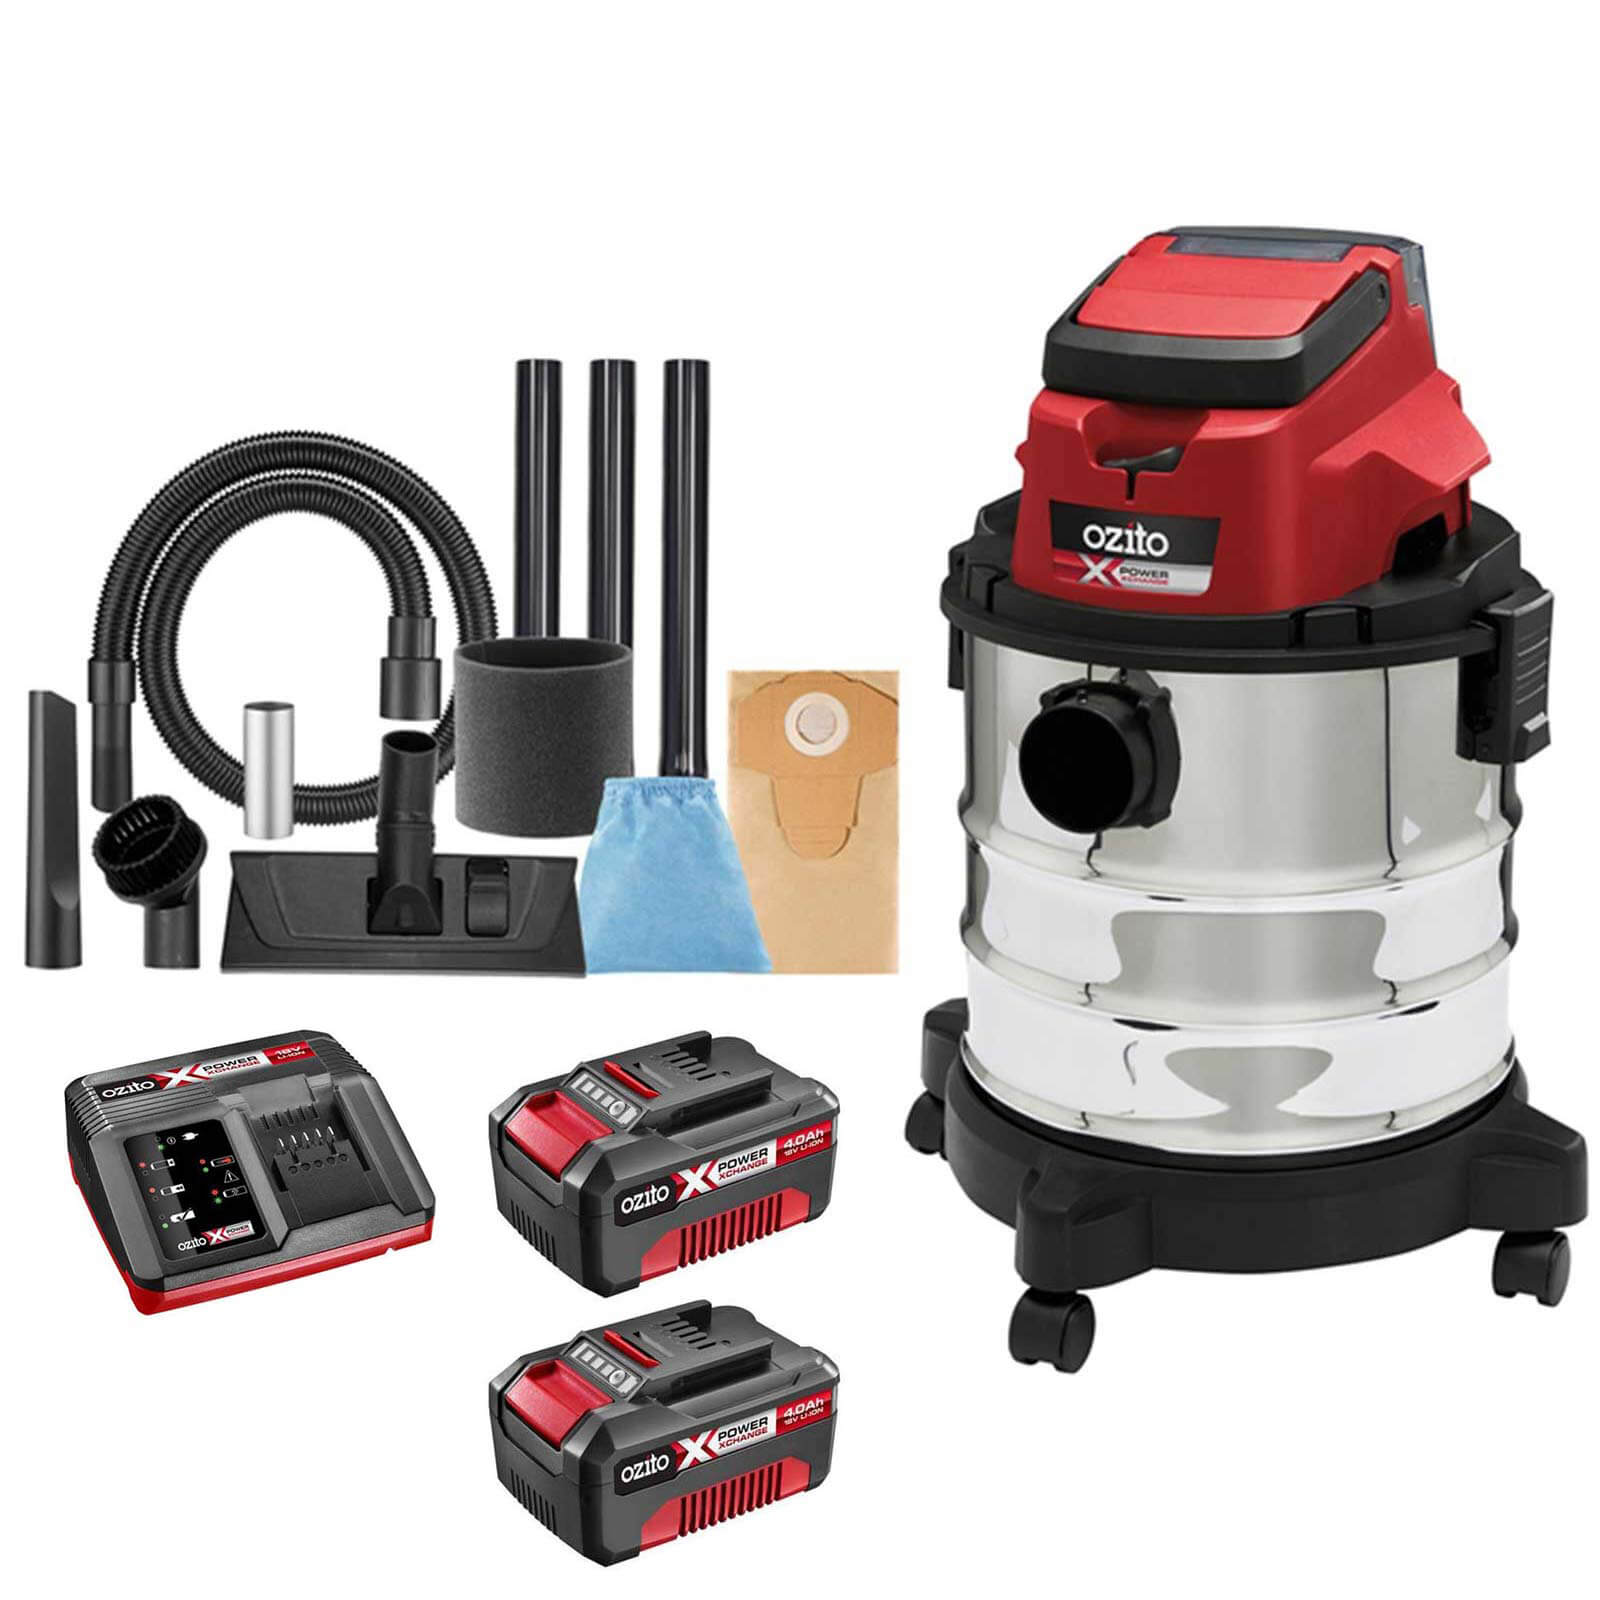 Ozito PXVWD 18v Cordless Mini Wet and Dry Vacuum Cleaner 2 x 4ah Li-ion Charger No Case